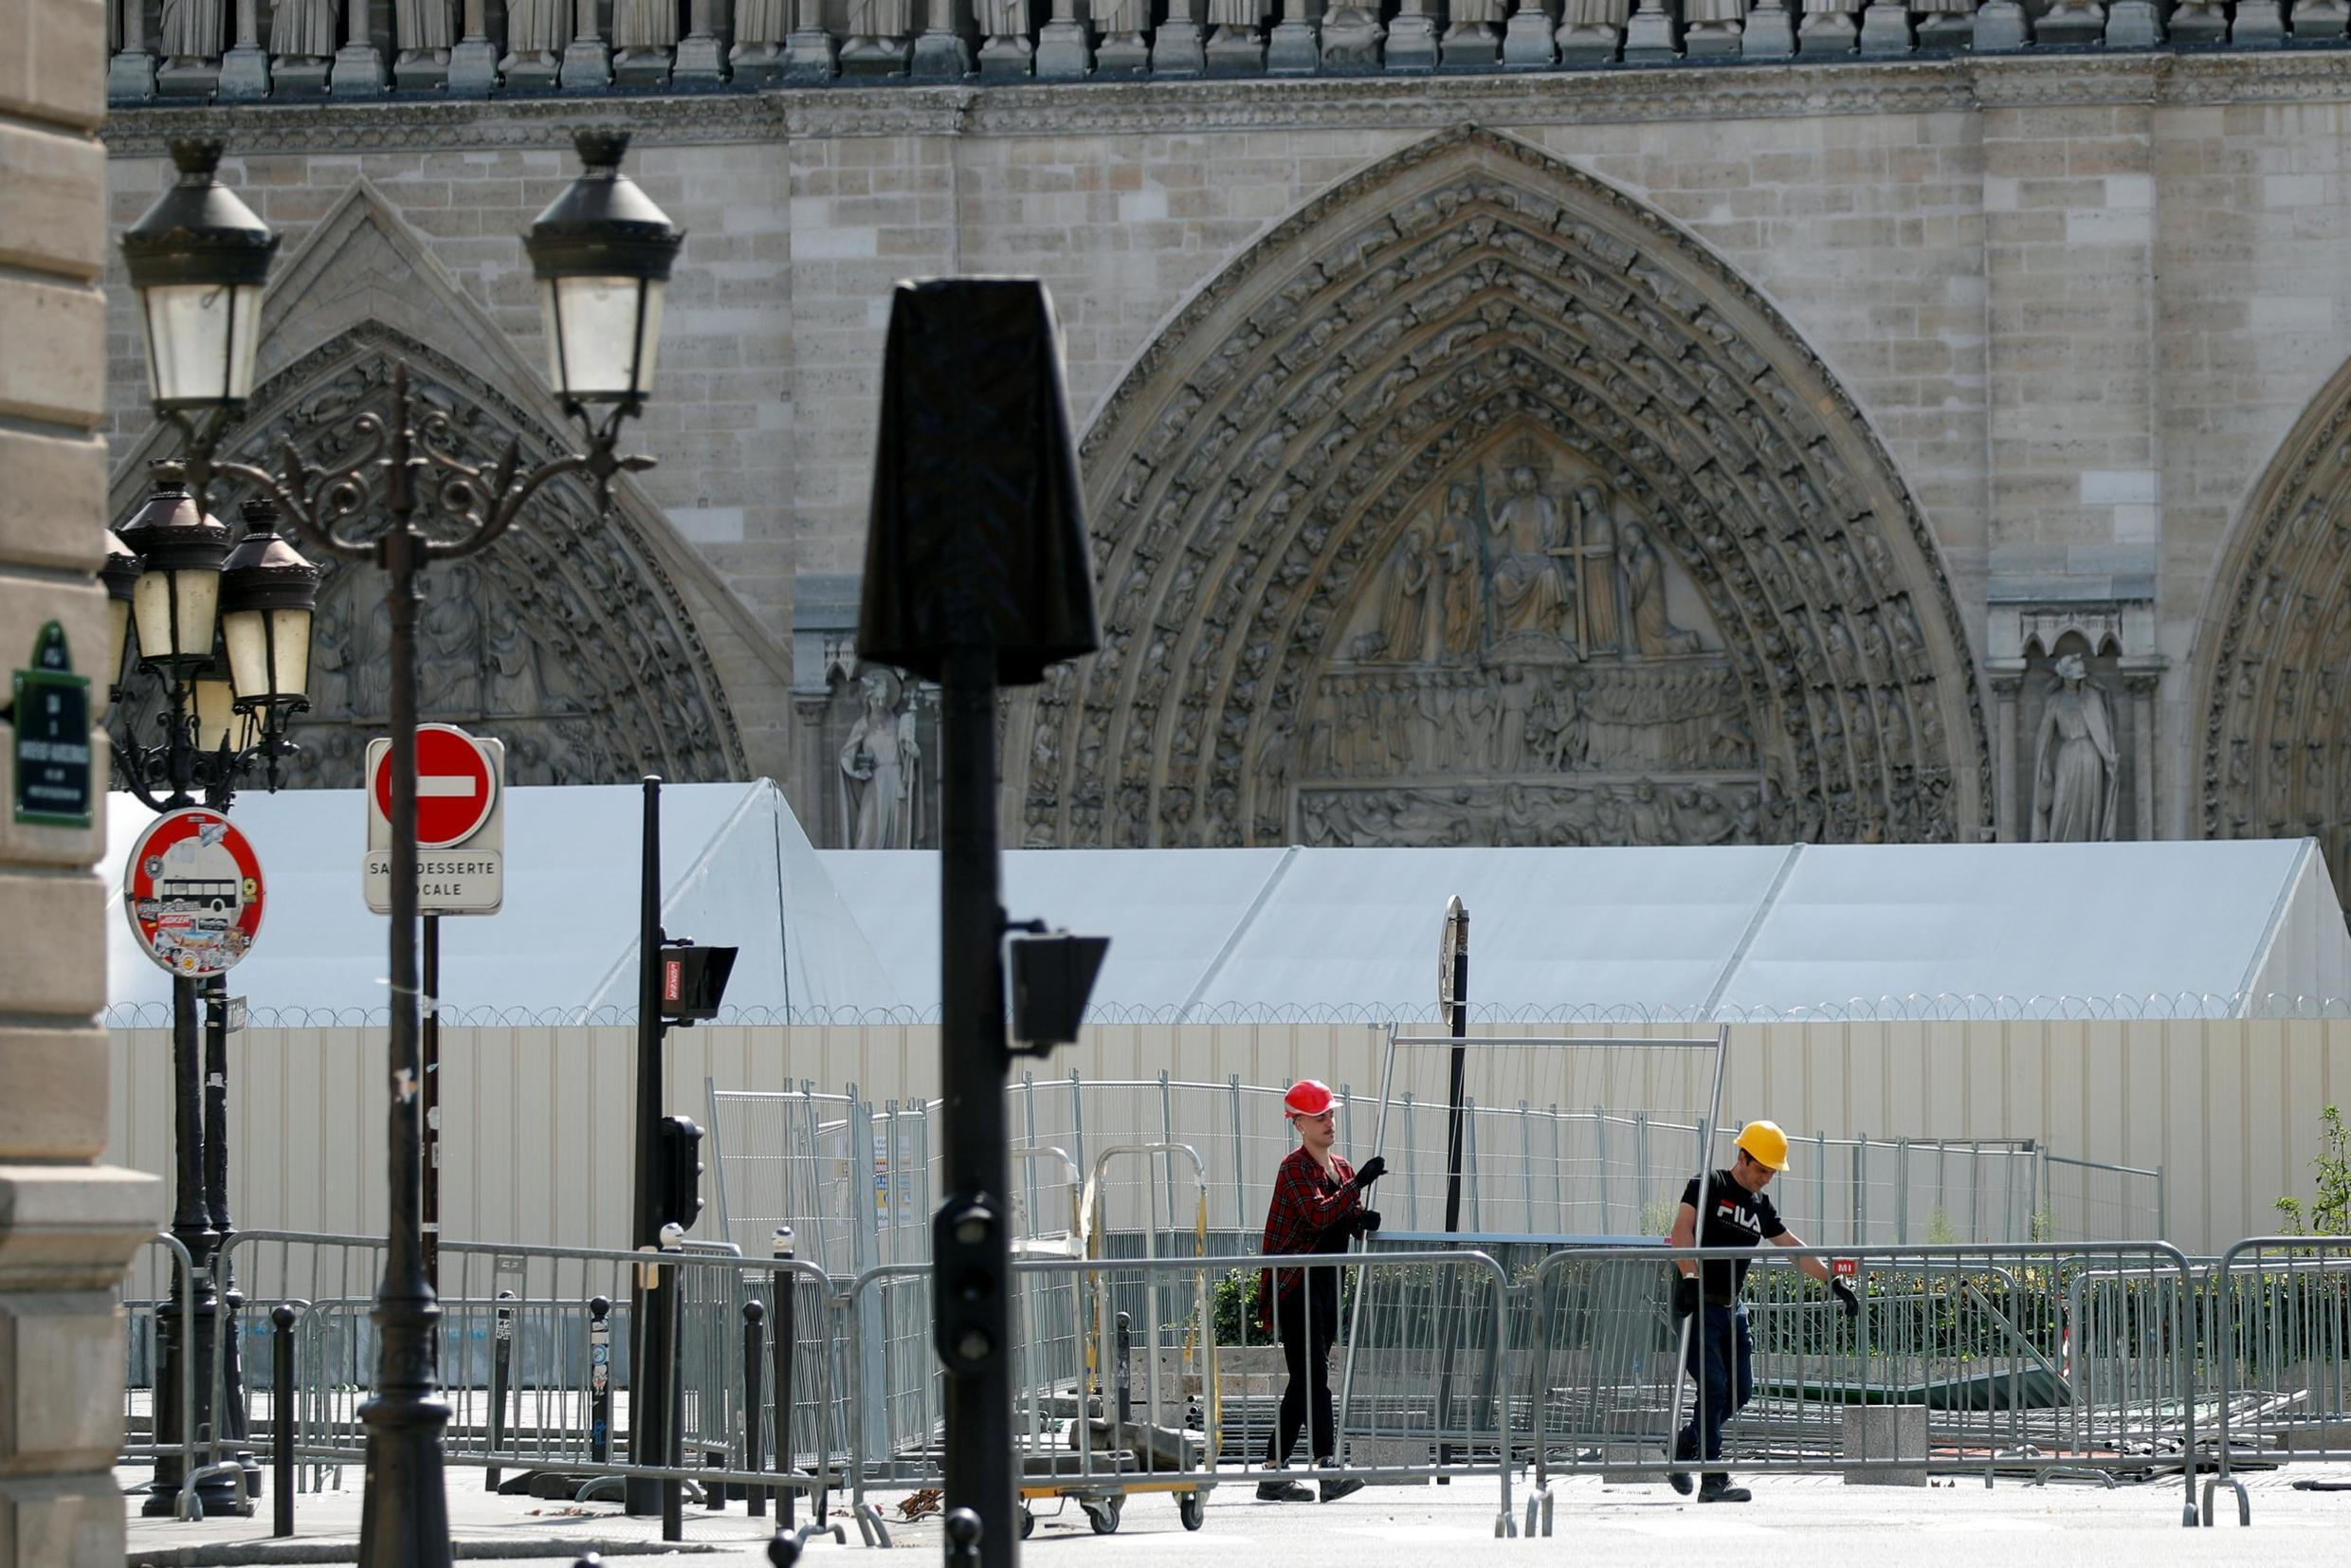 Workers install barriers around the Notre-Dame Cathedral in Paris in preparation for lead pollution clean-up operations in the surrounding streets, 13 August 2019.